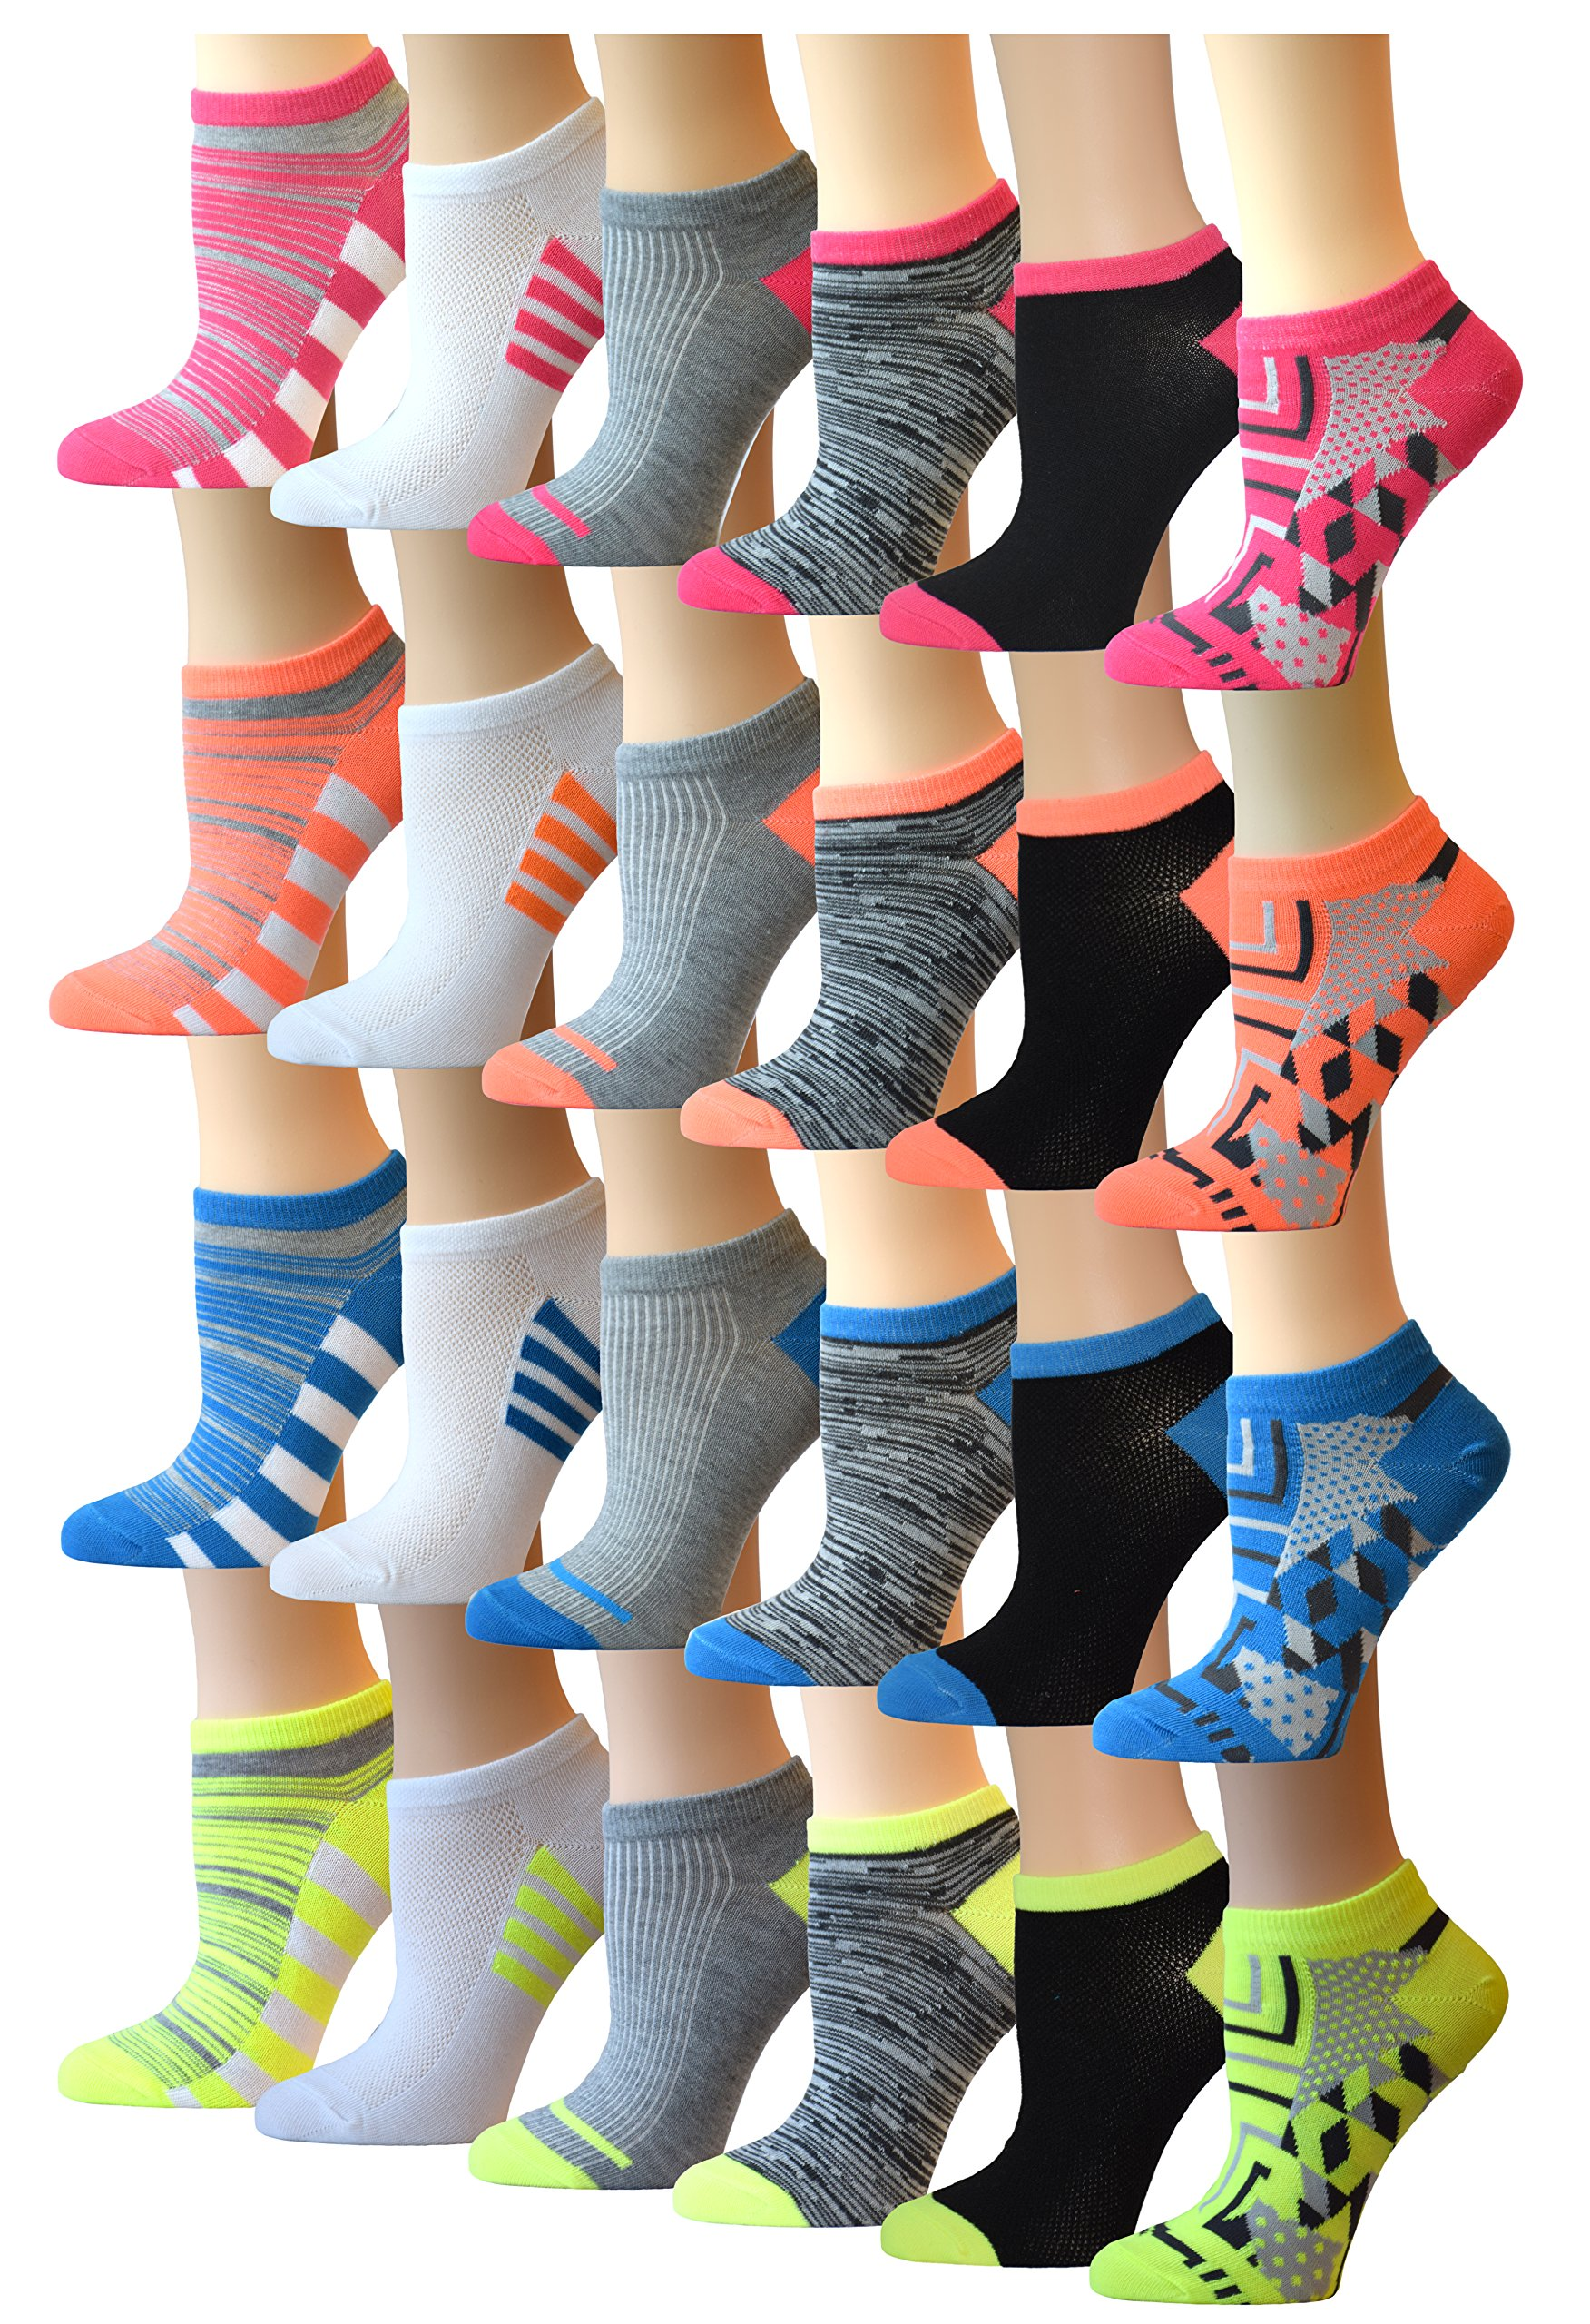 Top Step Women's 24 Pairs Colorful Patterned Low Cut / No Show Socks,  9-11. Fits Shoe Size 4-10, Neon